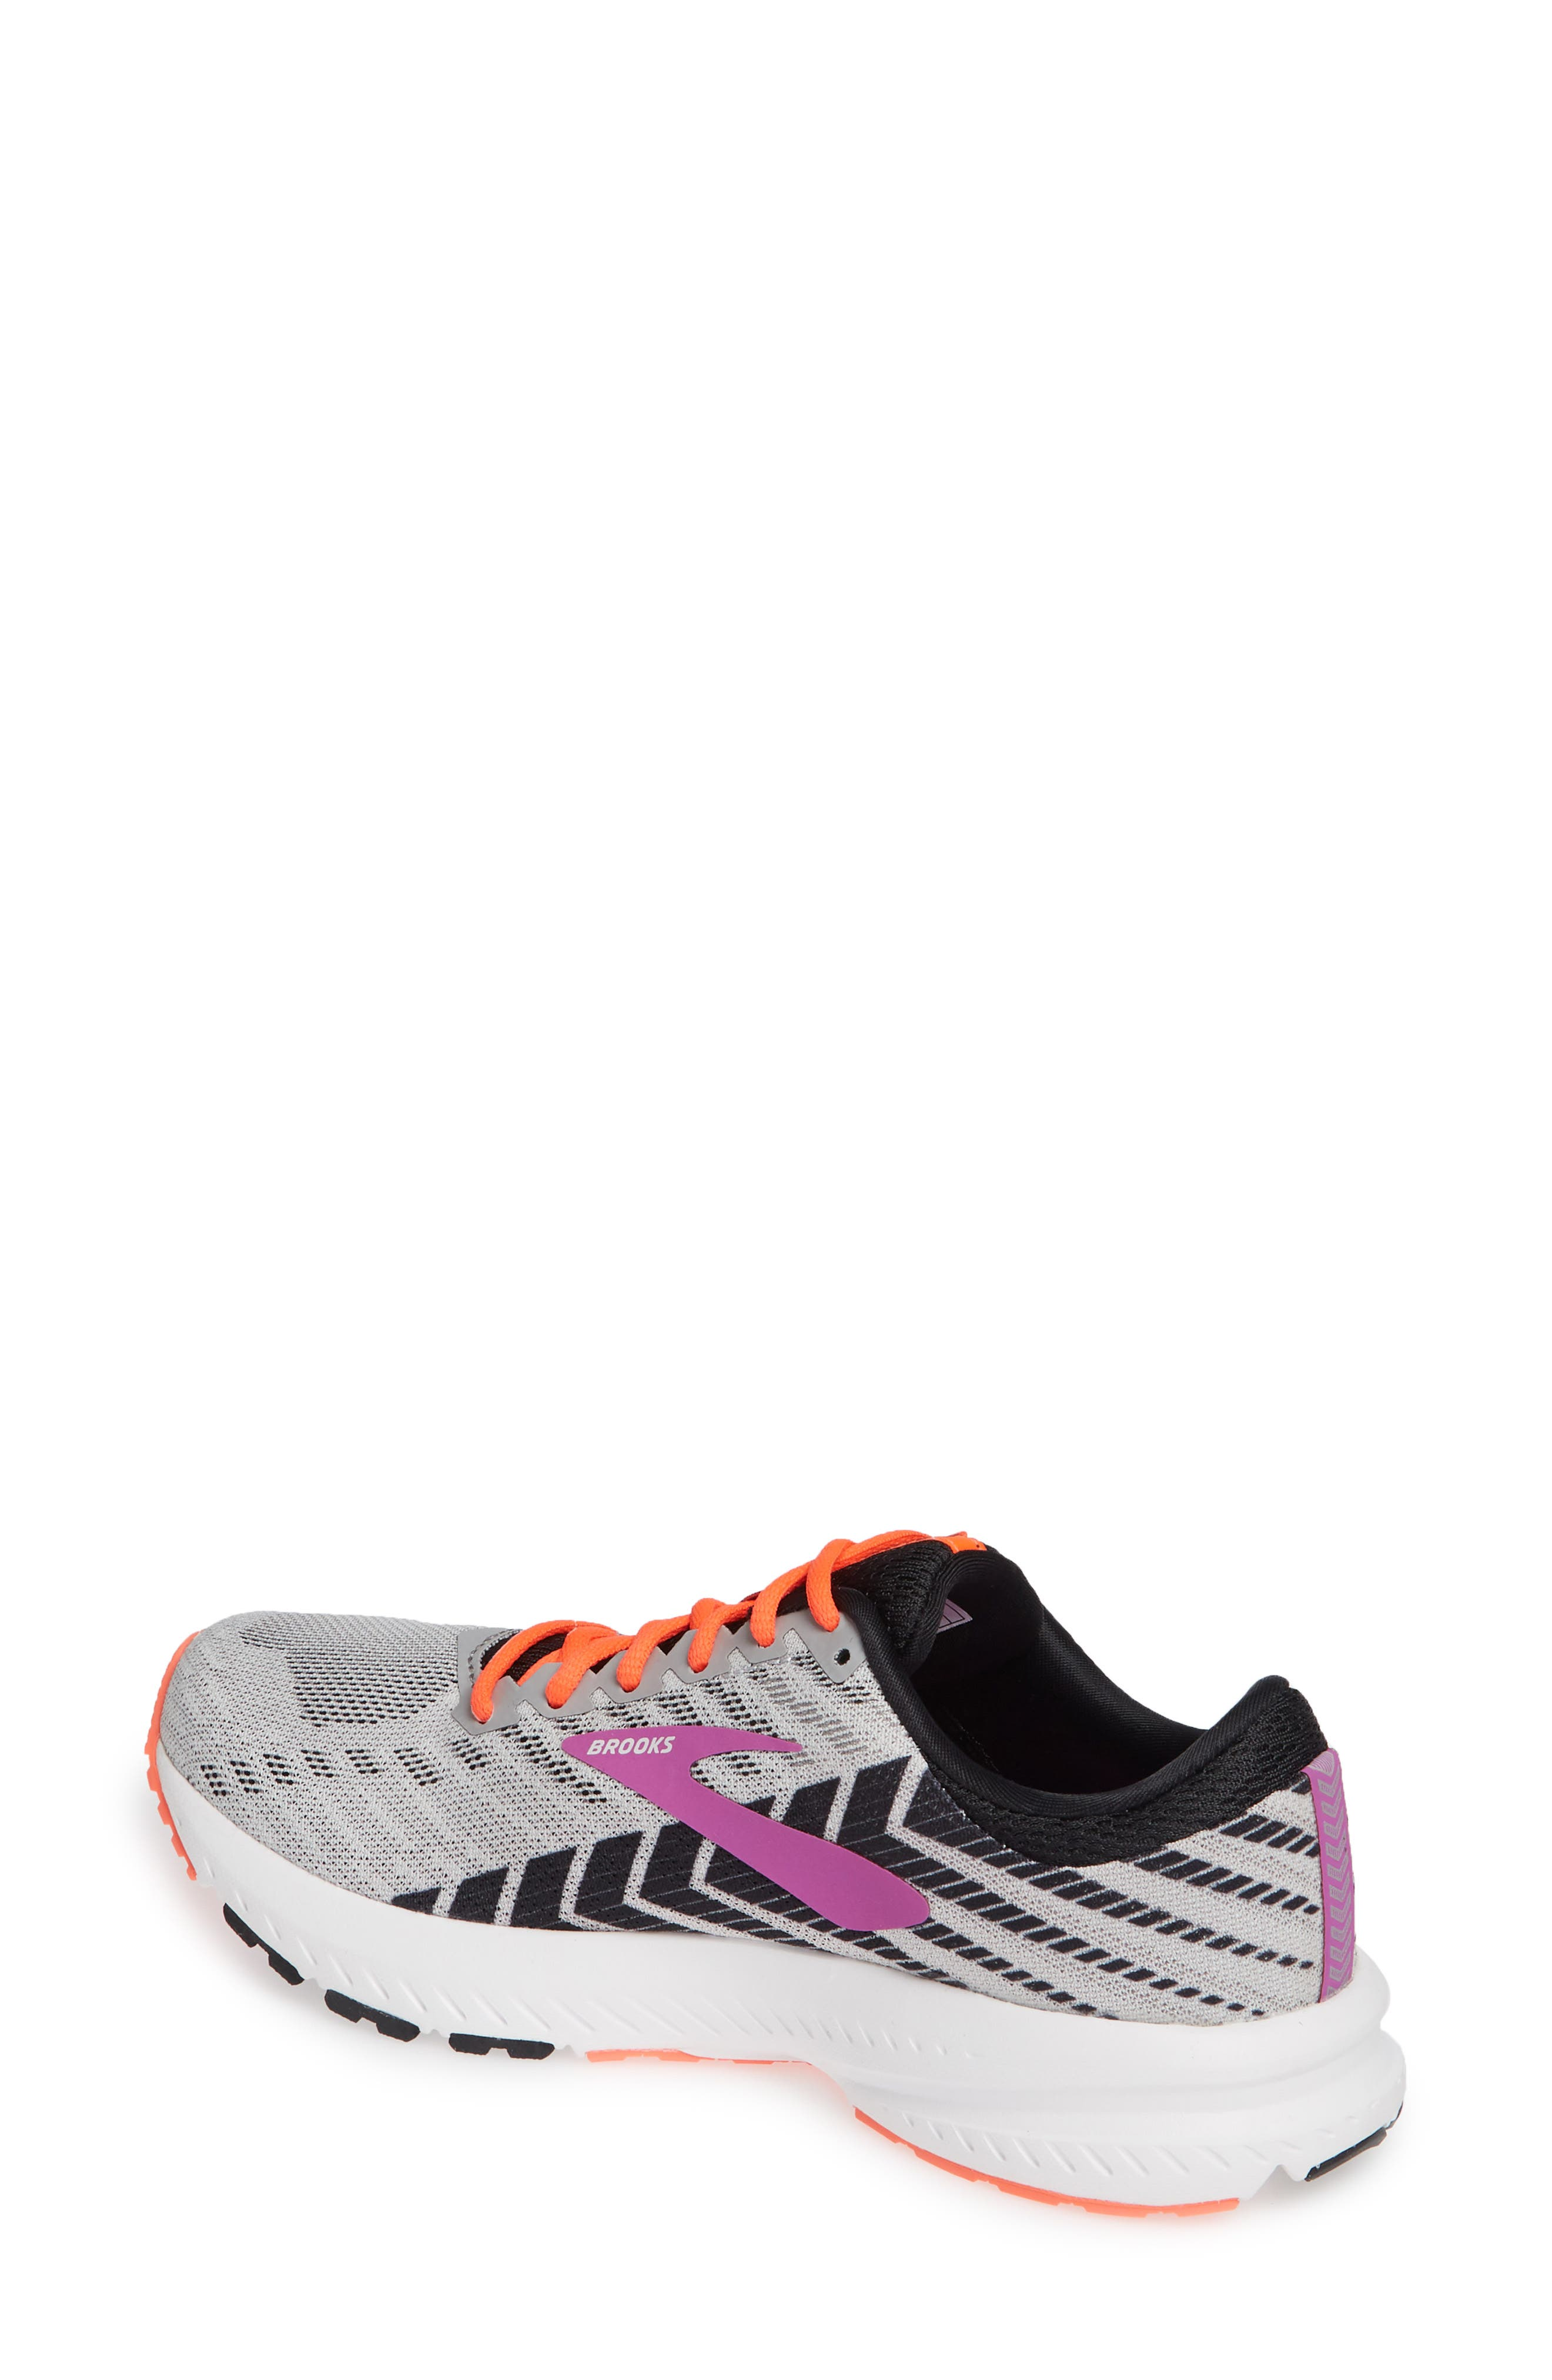 Launch 6 Running Shoe,                             Alternate thumbnail 2, color,                             GREY/ BLACK/ PURPLE